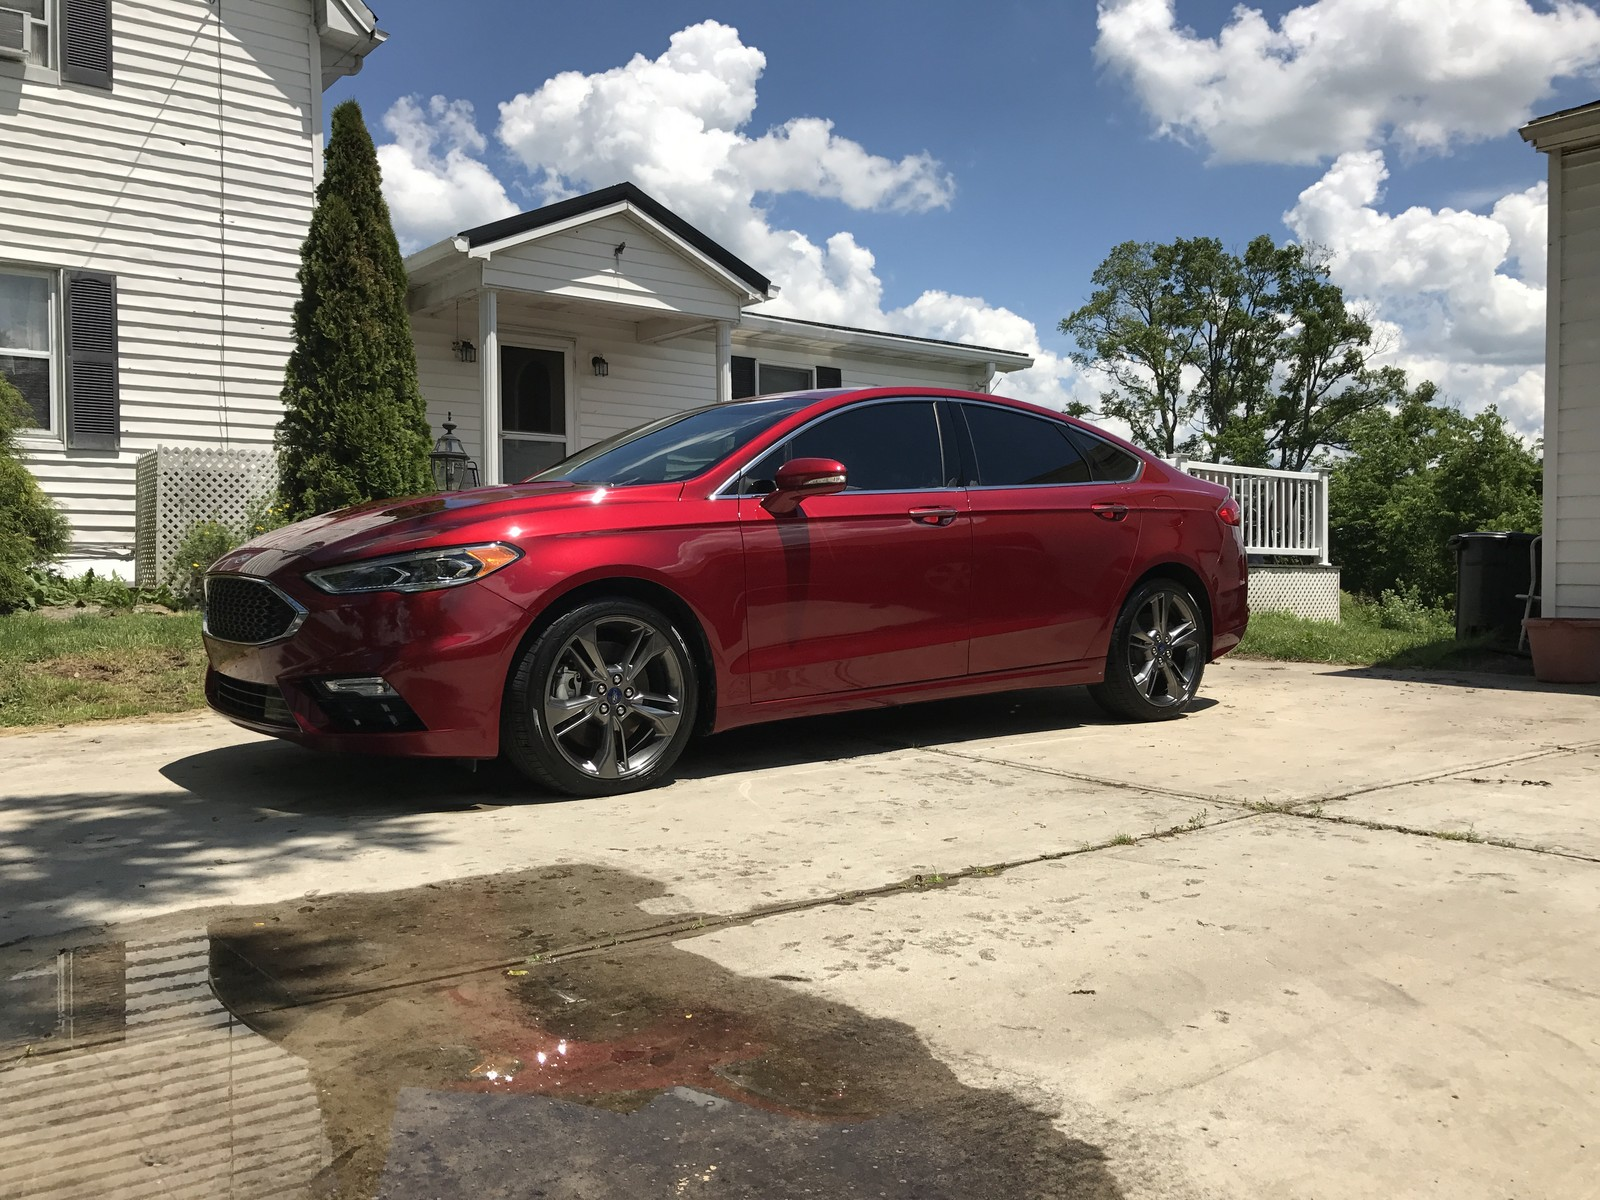 Ruby red 2017 Ford Fusion Sport